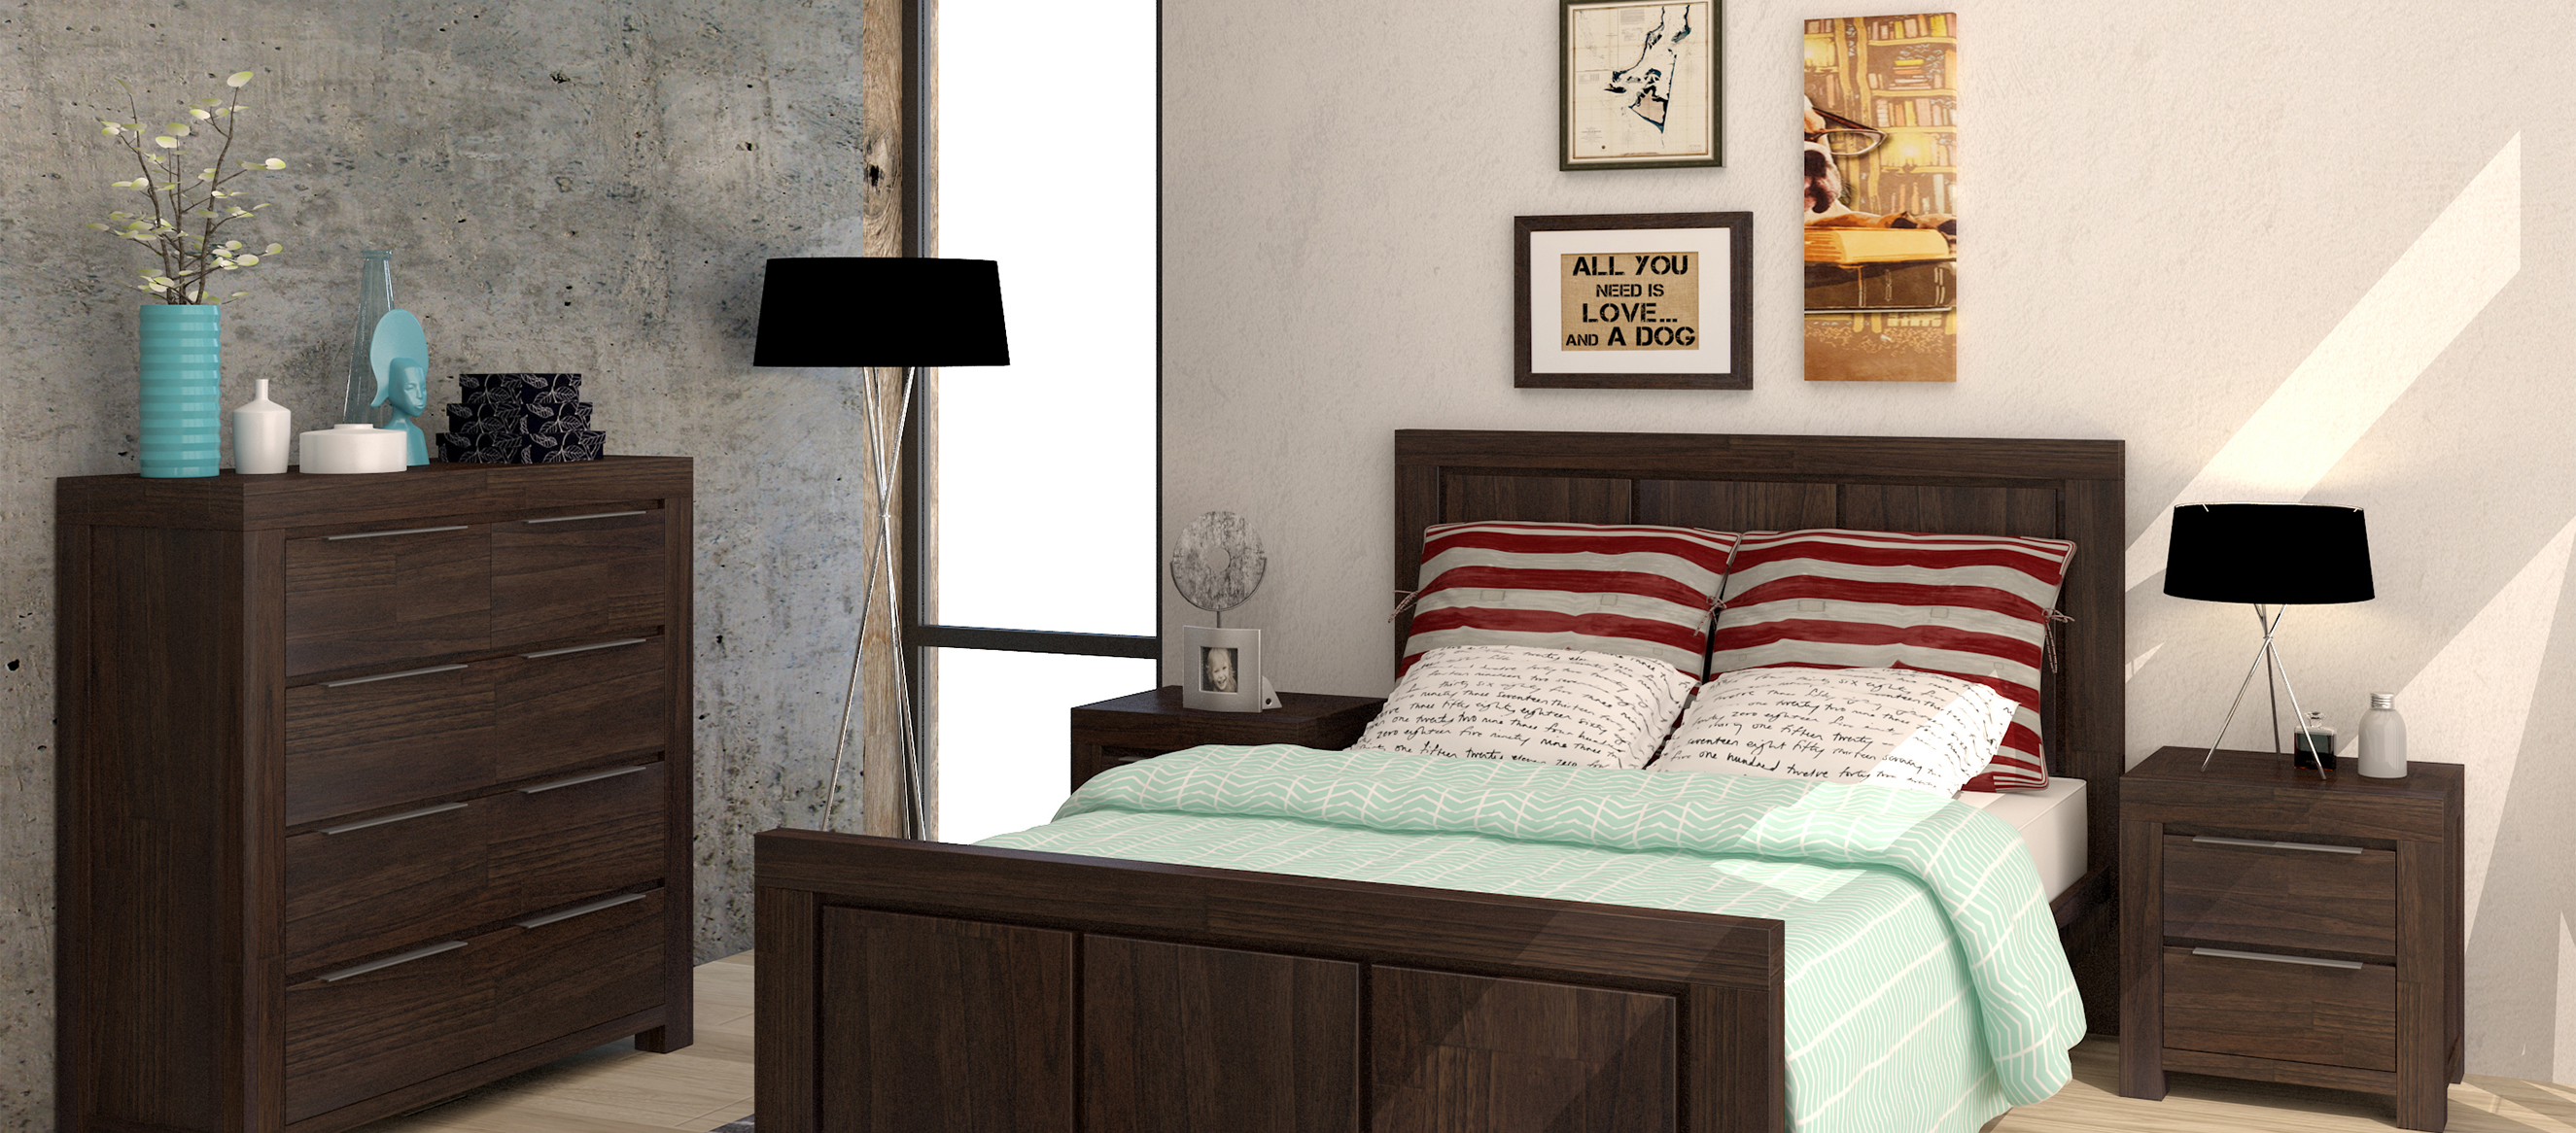 Cabanas Range Bedroom furniture